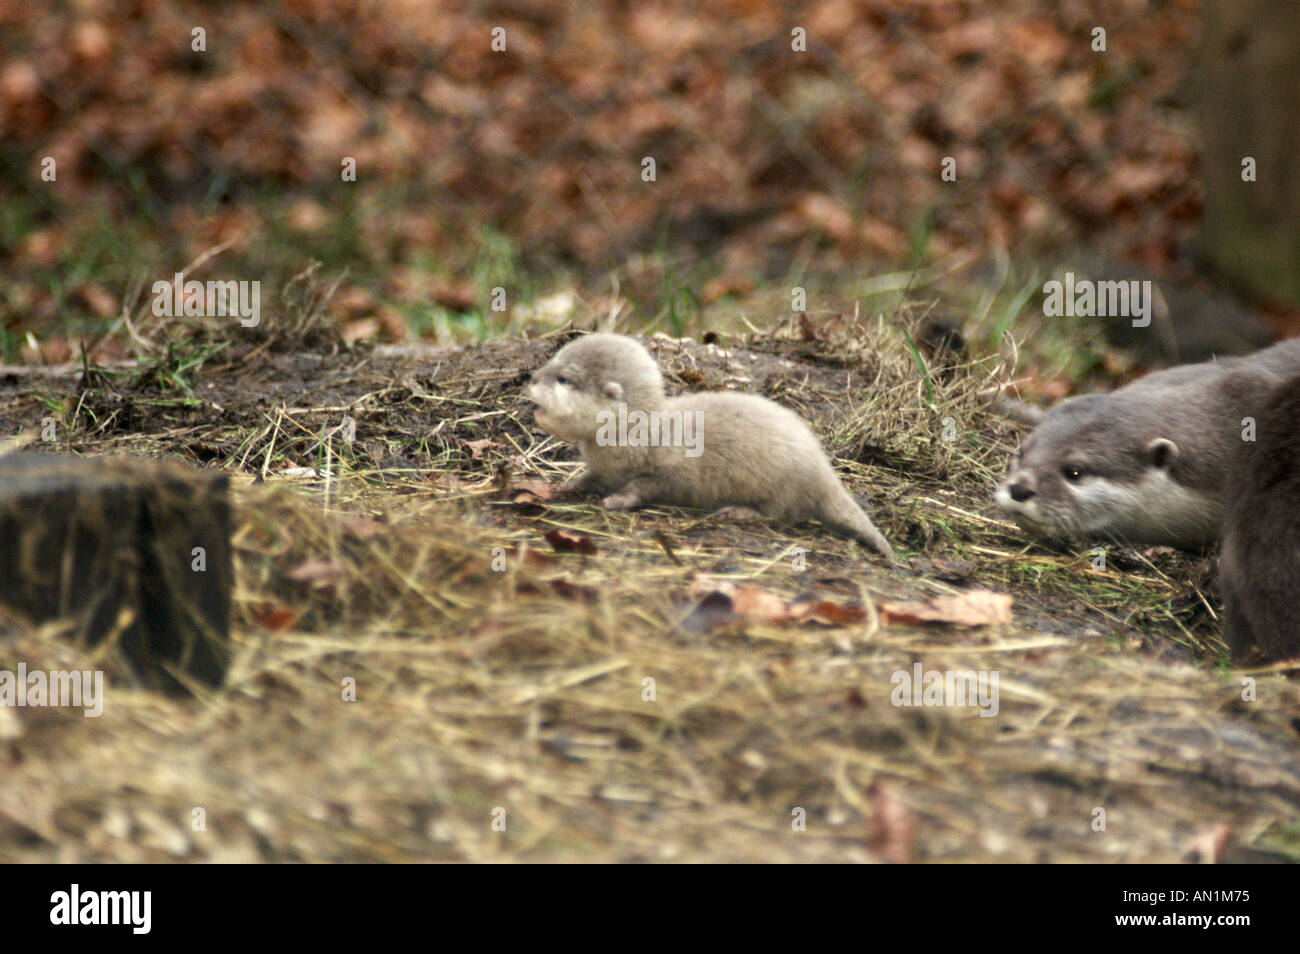 Baby otter with mother Asian or Oriental Short Clawed Otter Aonyx cinerea newborn Stock Photo